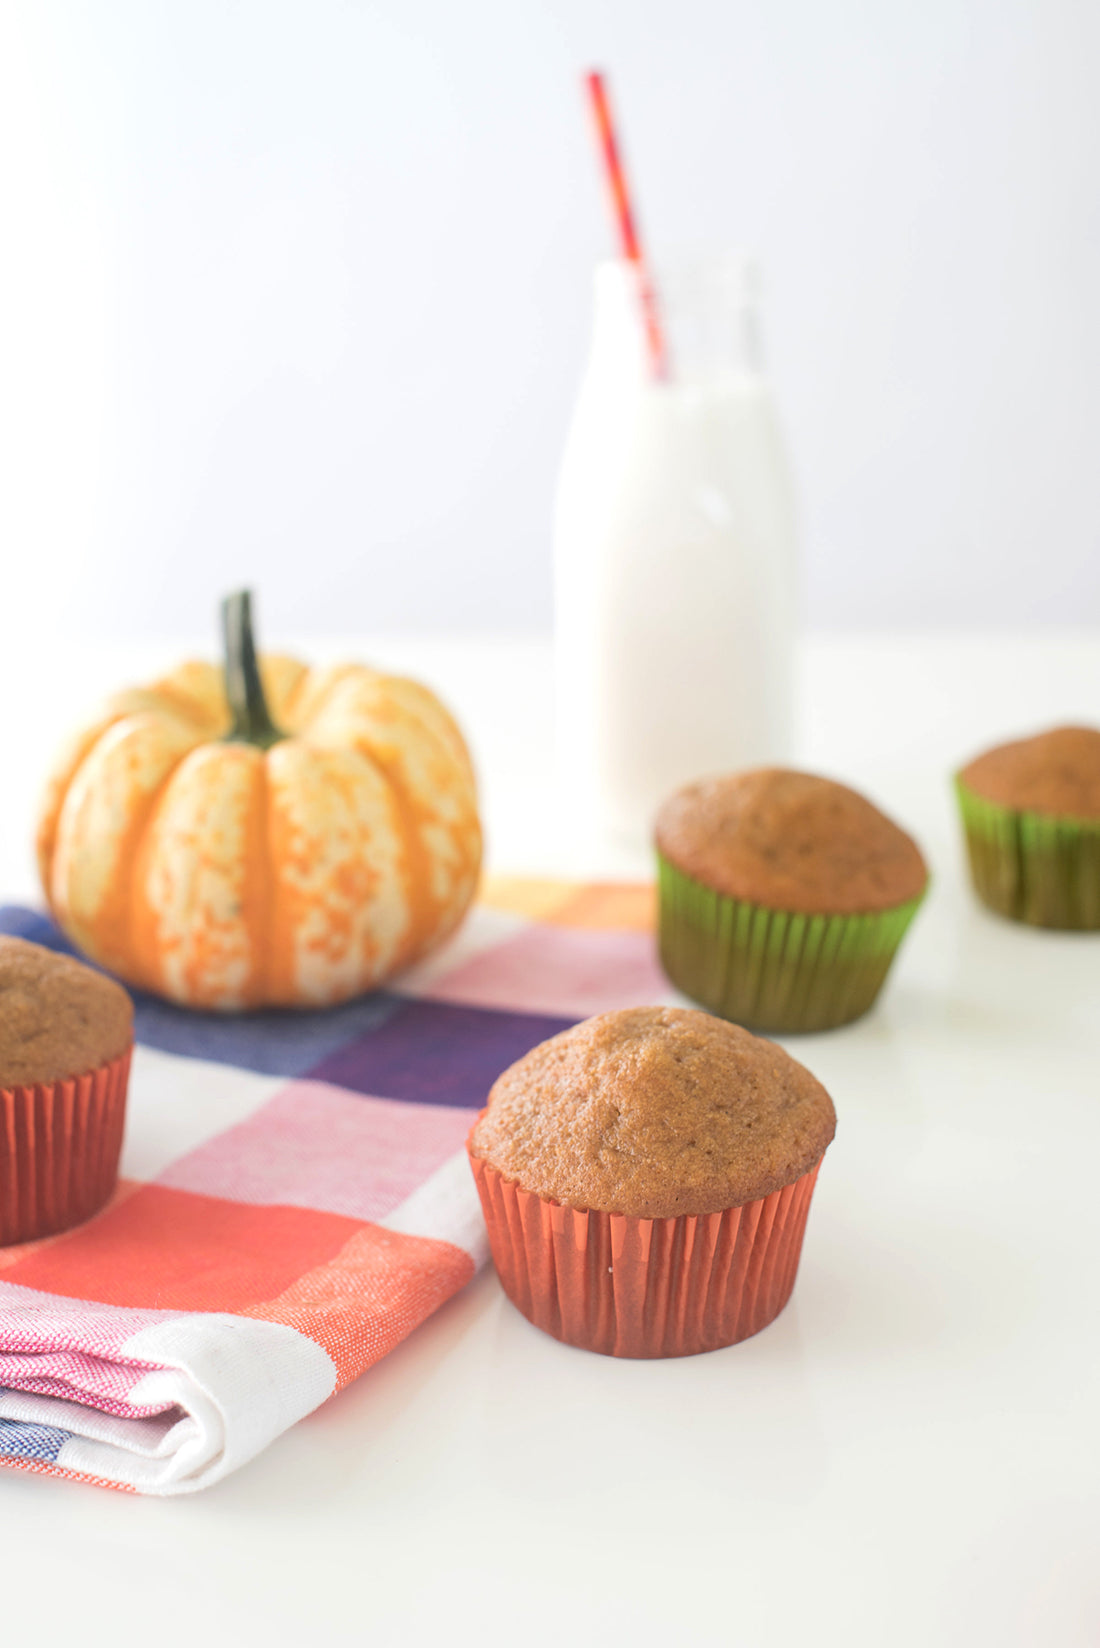 Image of Miss Jones Baking Co Pumpkin Spice Latte (PSL) Cupcakes in front of a glass of milk and a pumpkin